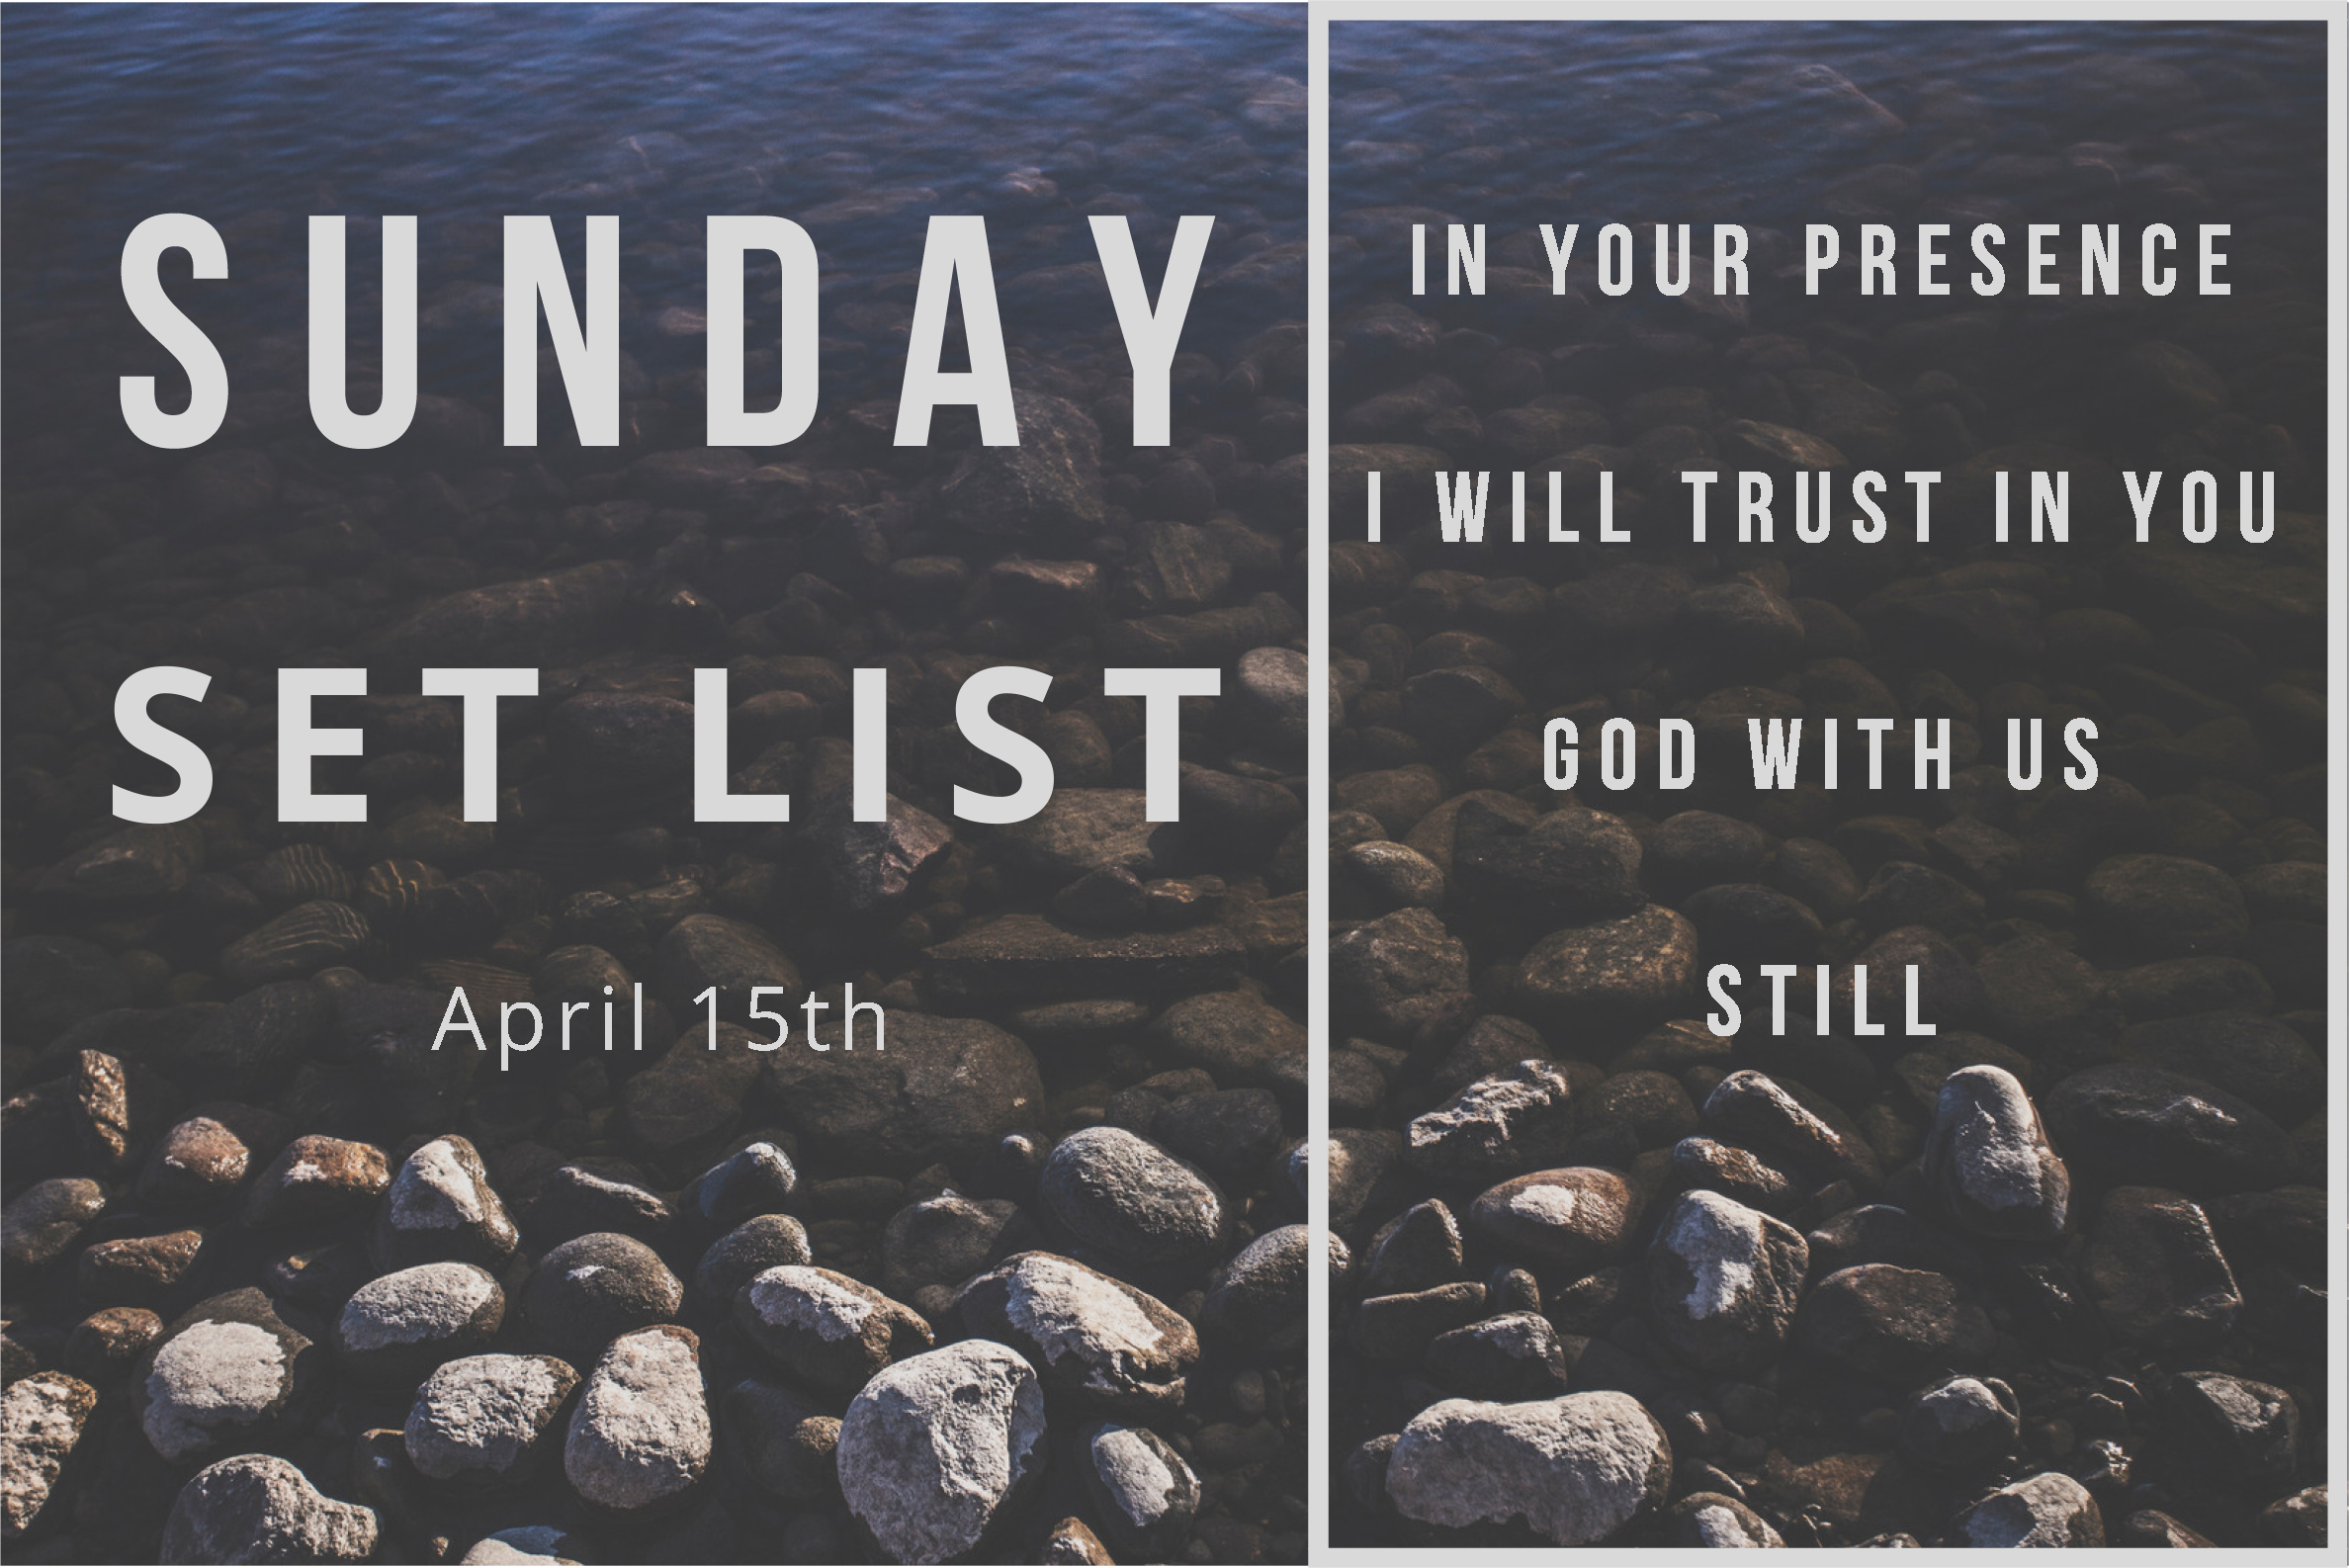 Sunday Setlist April 15.jpg